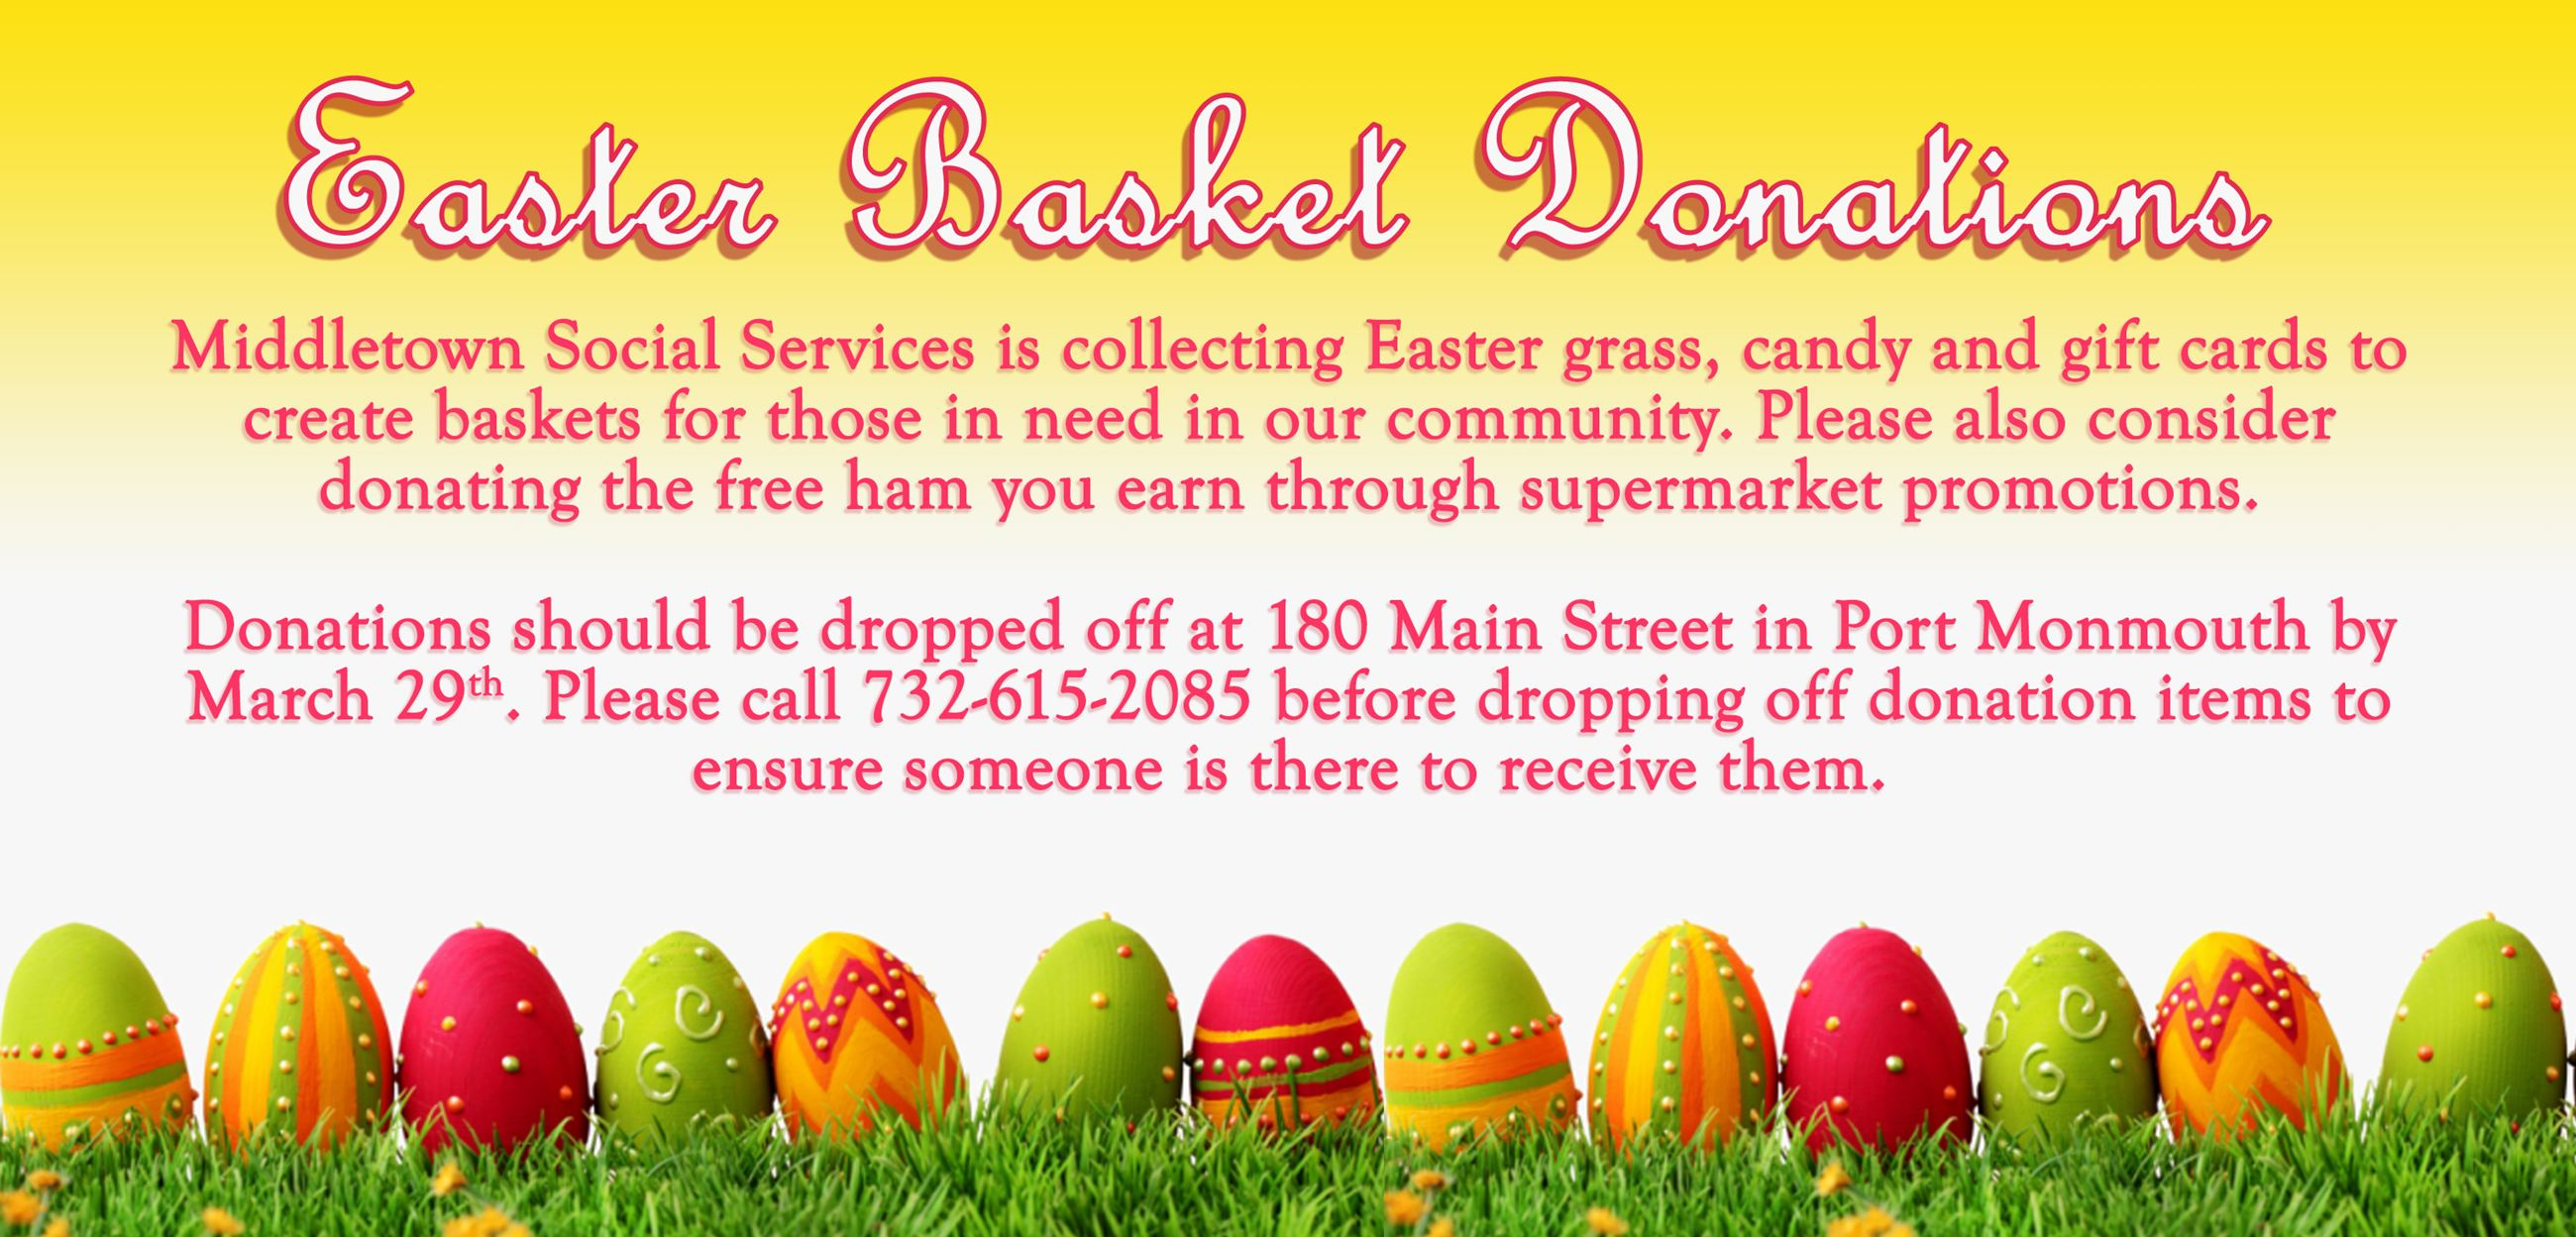 Easter Basket Donations 2021